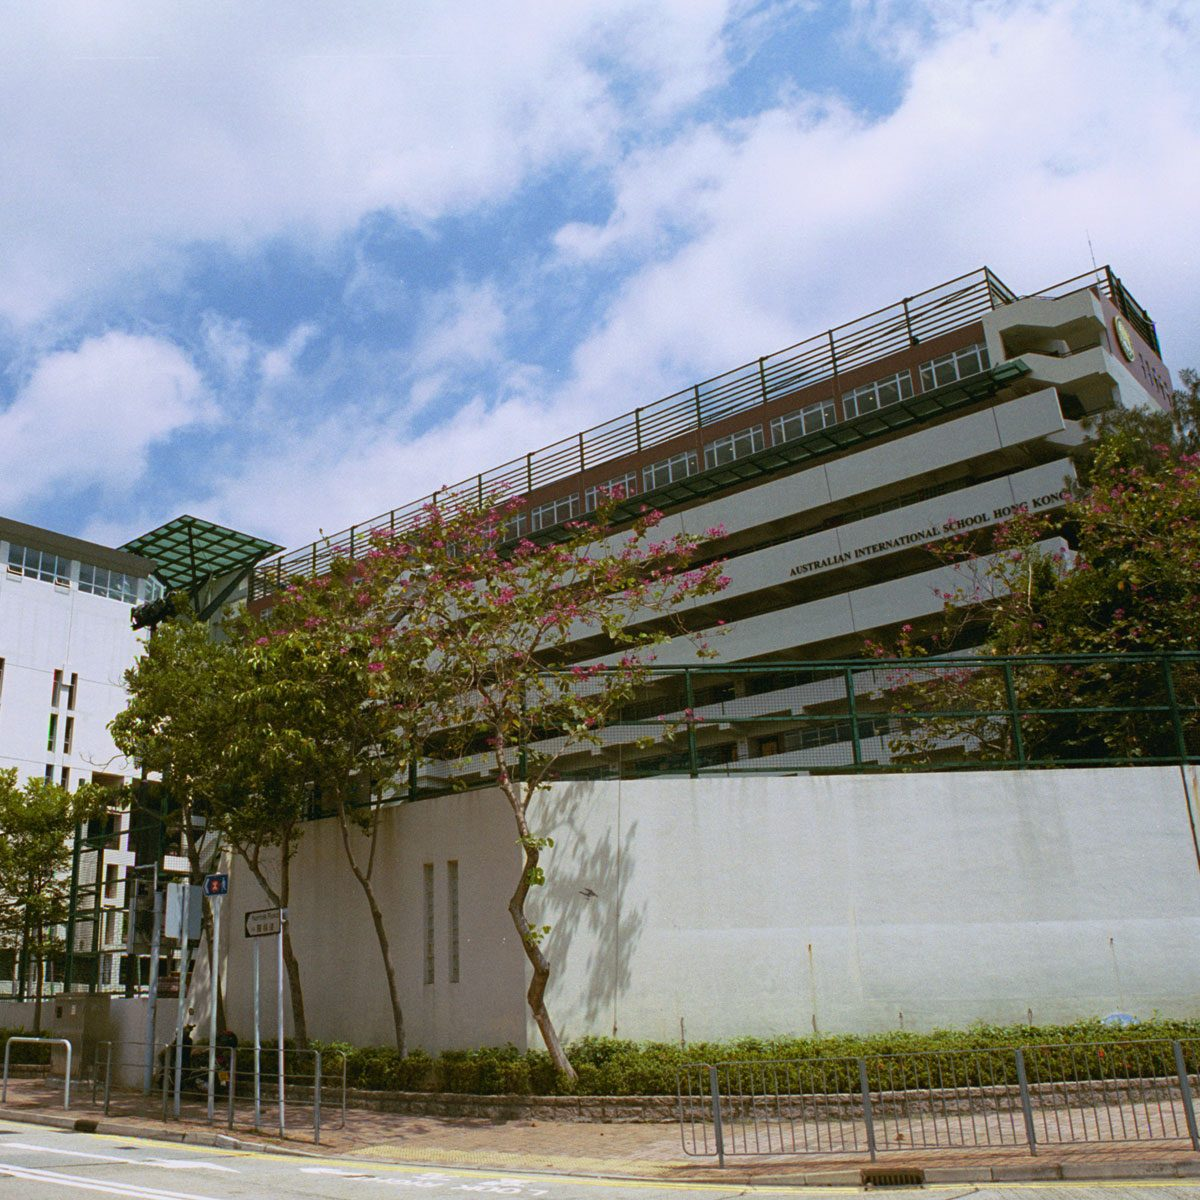 Australian International School, Design & Build Works for Swimming Pool Enclosure, and Addition of One Floor at 9/F., at 3A Norfolk Road, Kowloon Tong, Kowloon